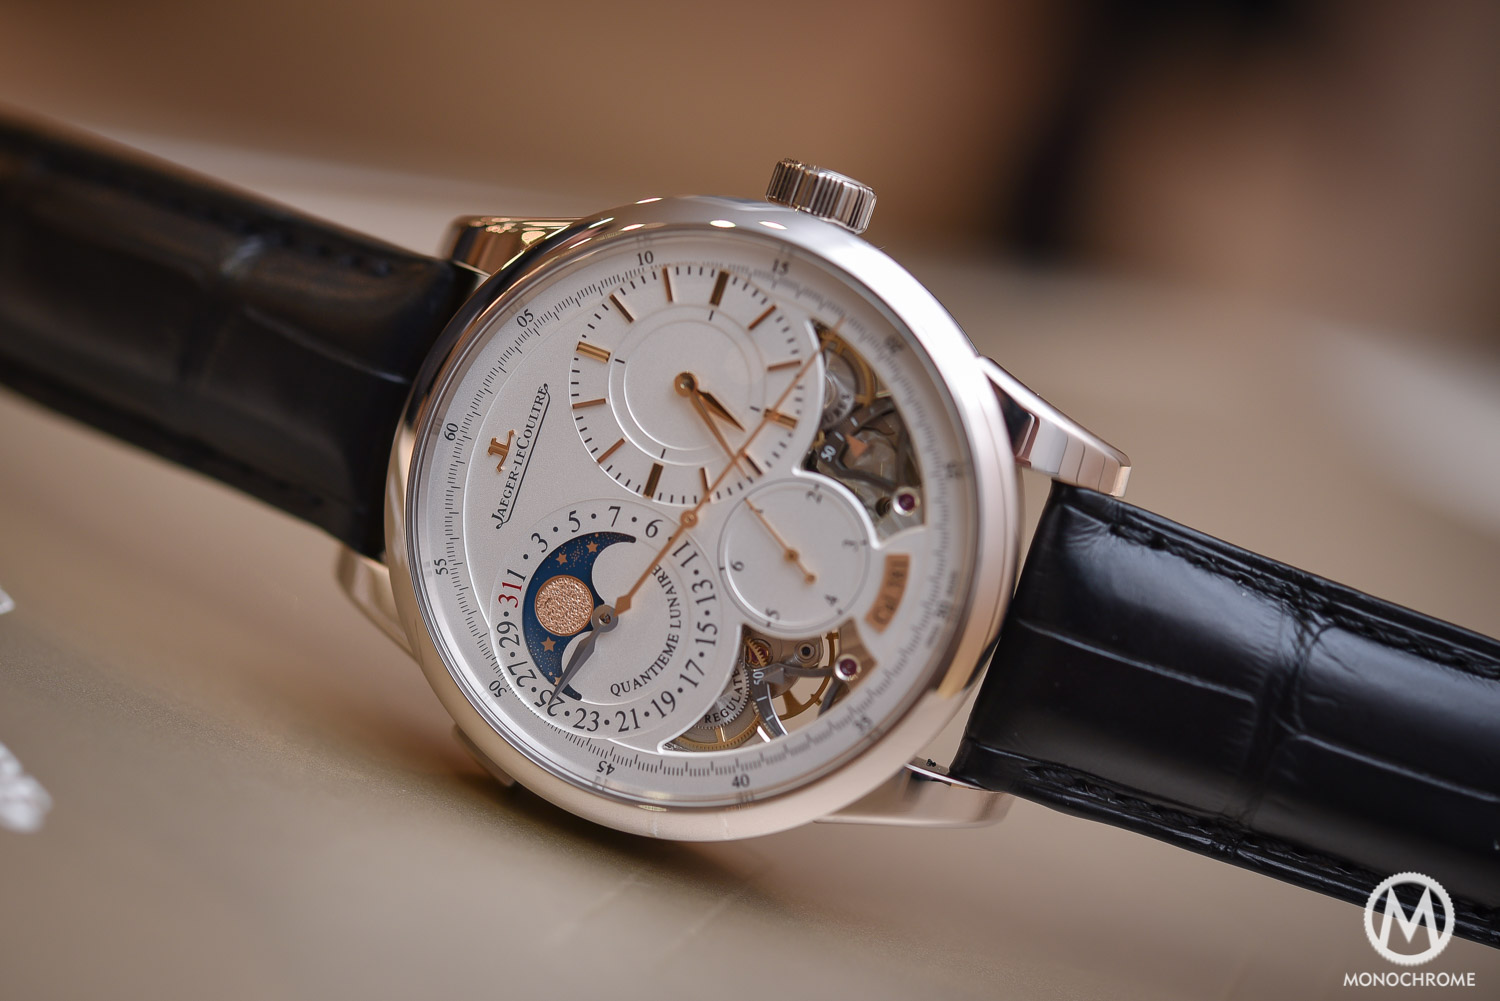 Jaeger-LeCoultre Duometre Quantieme Lunaire in white gold and opened dial - 1